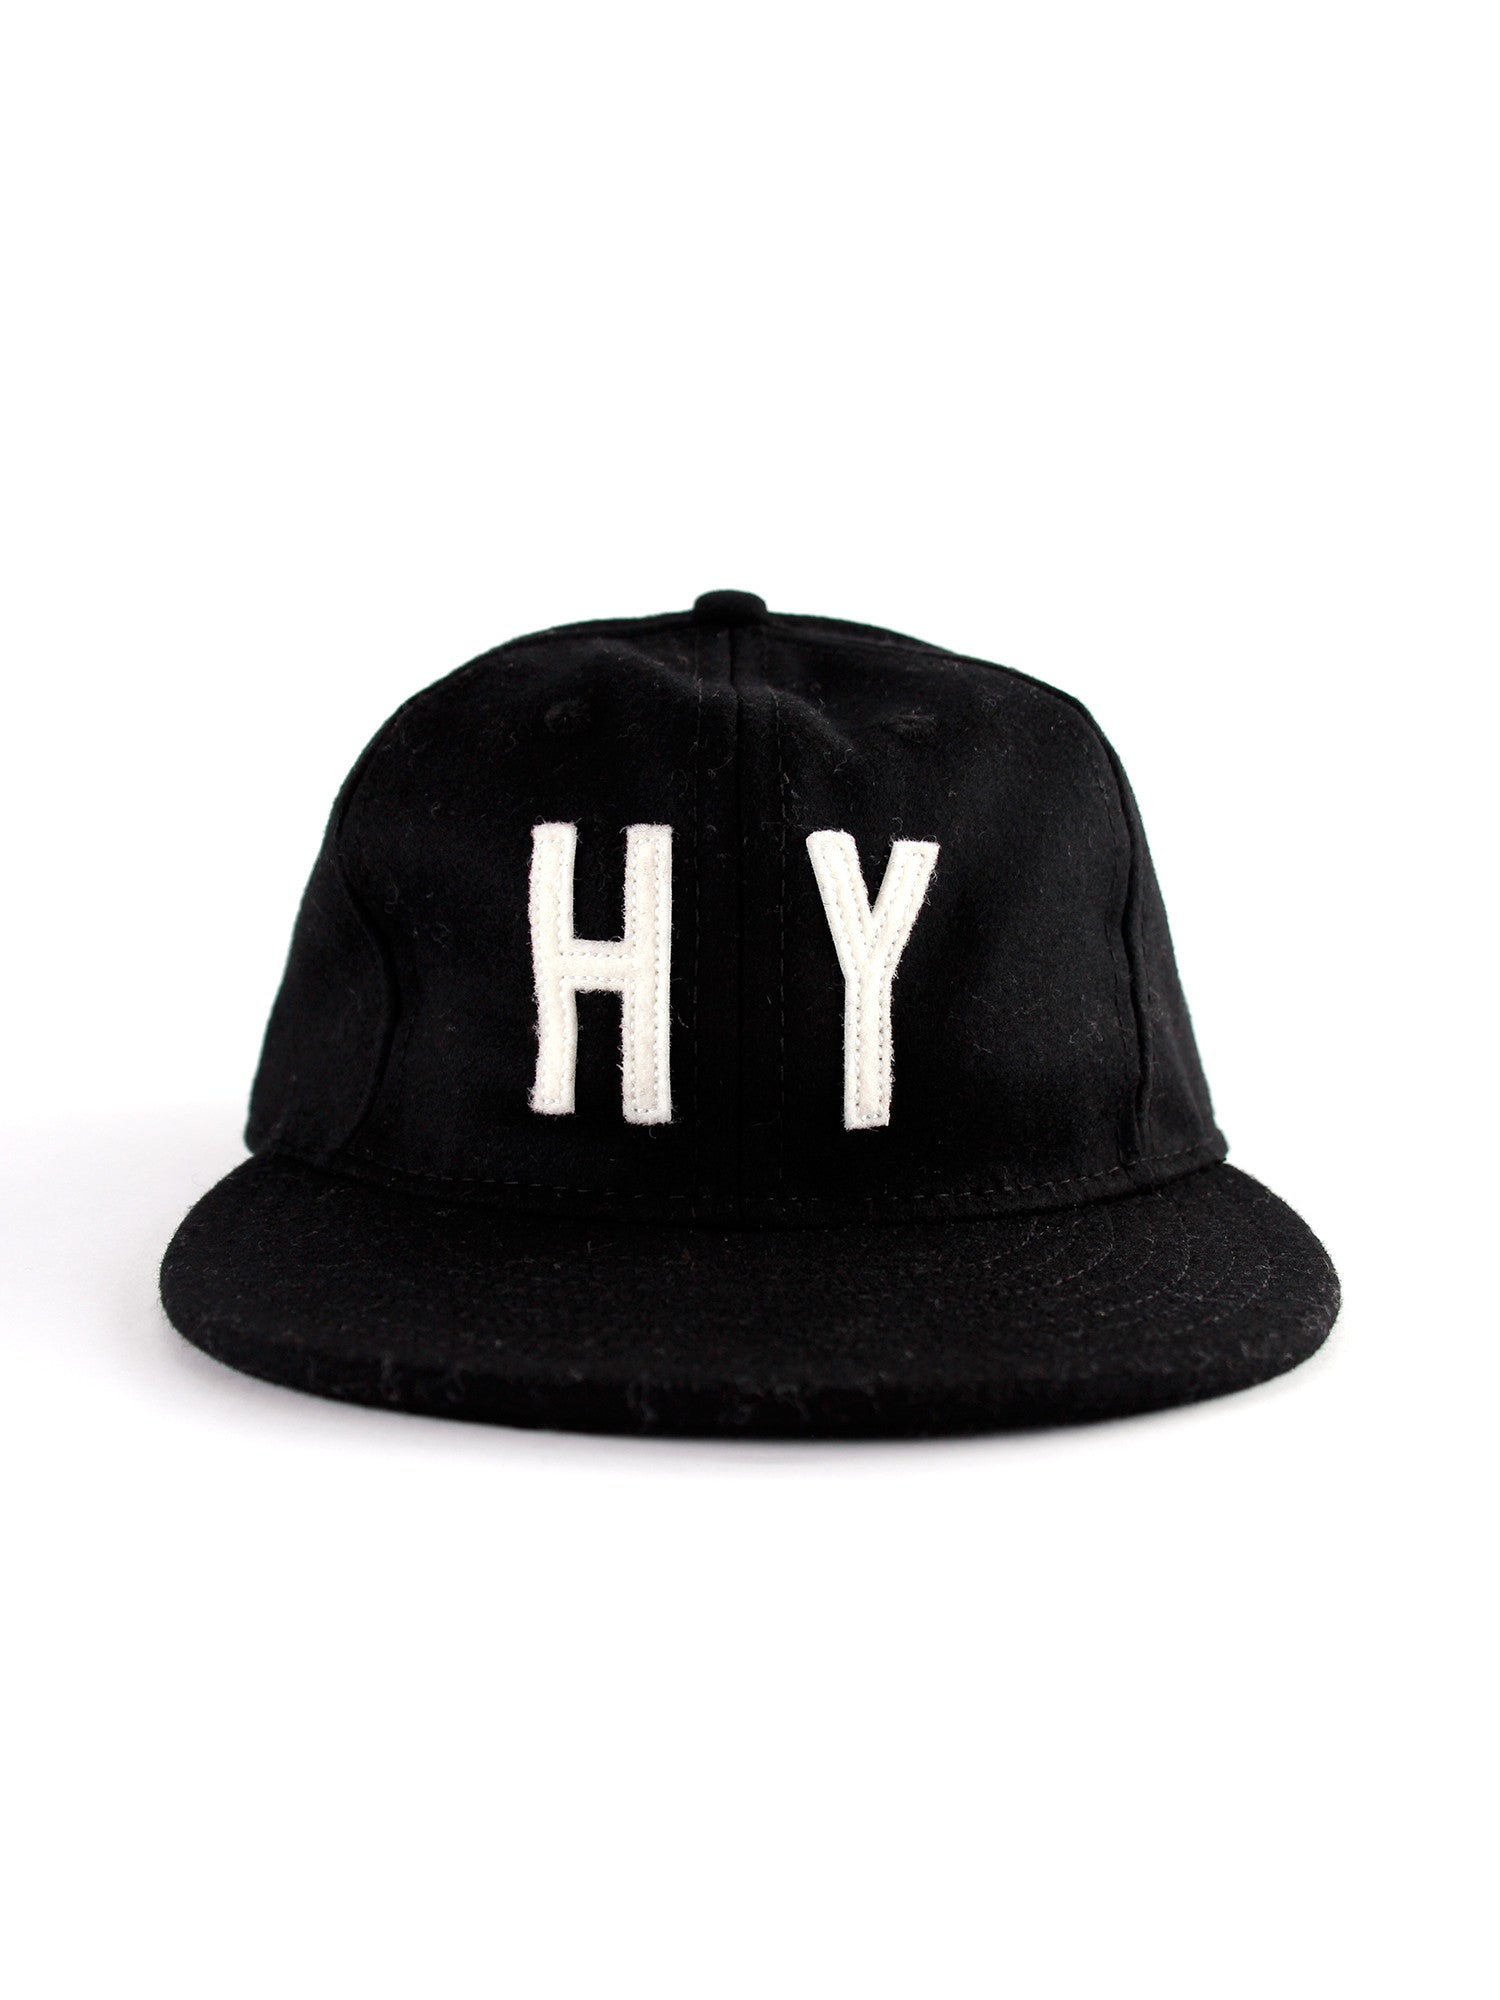 HSTRY x Ebbets Wool Cap